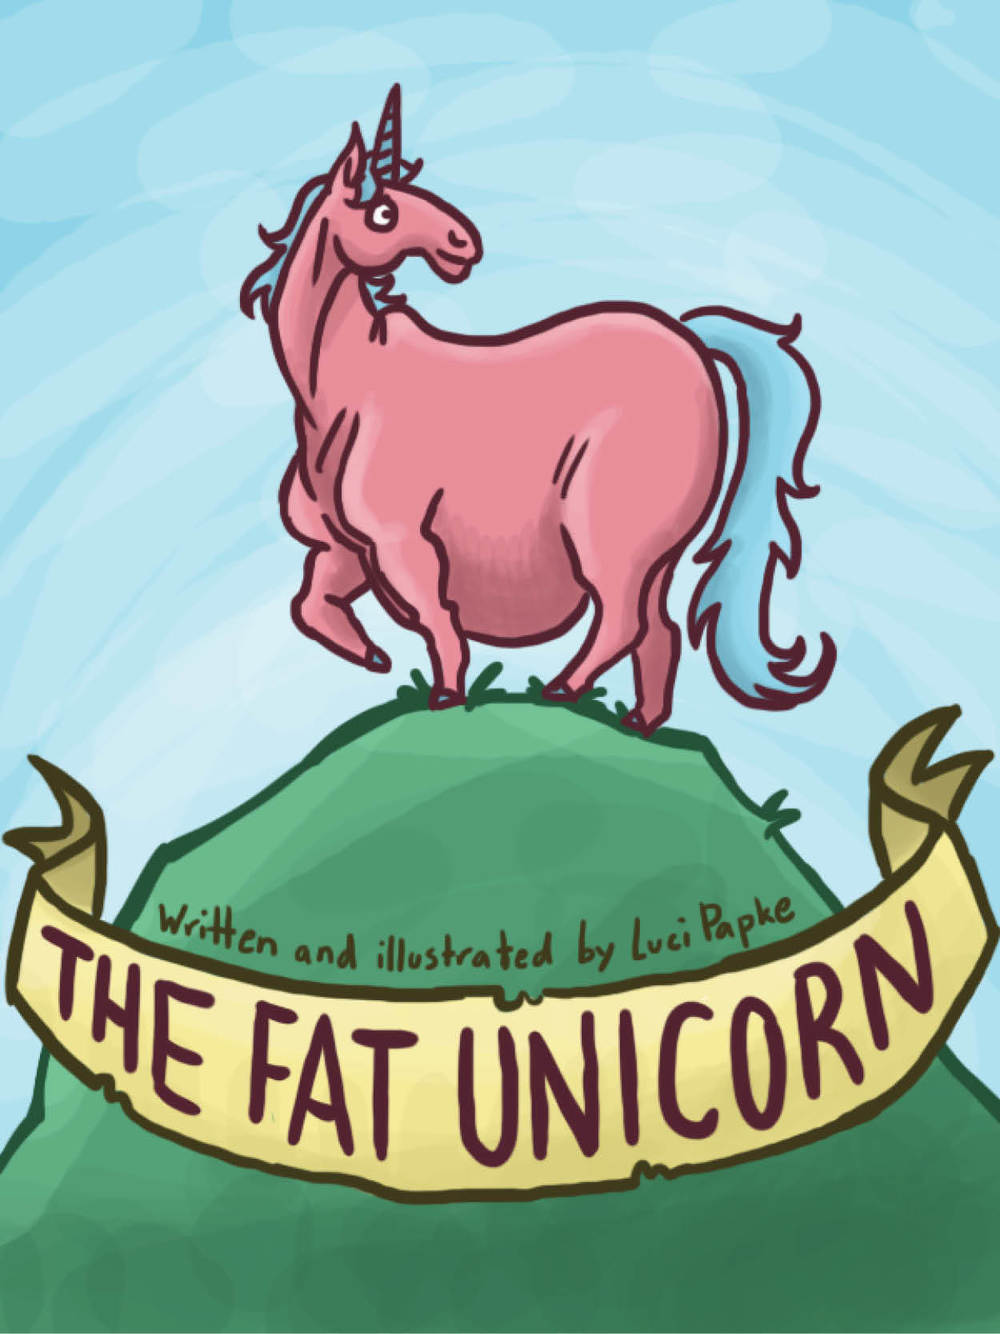 The Fat Unicorn